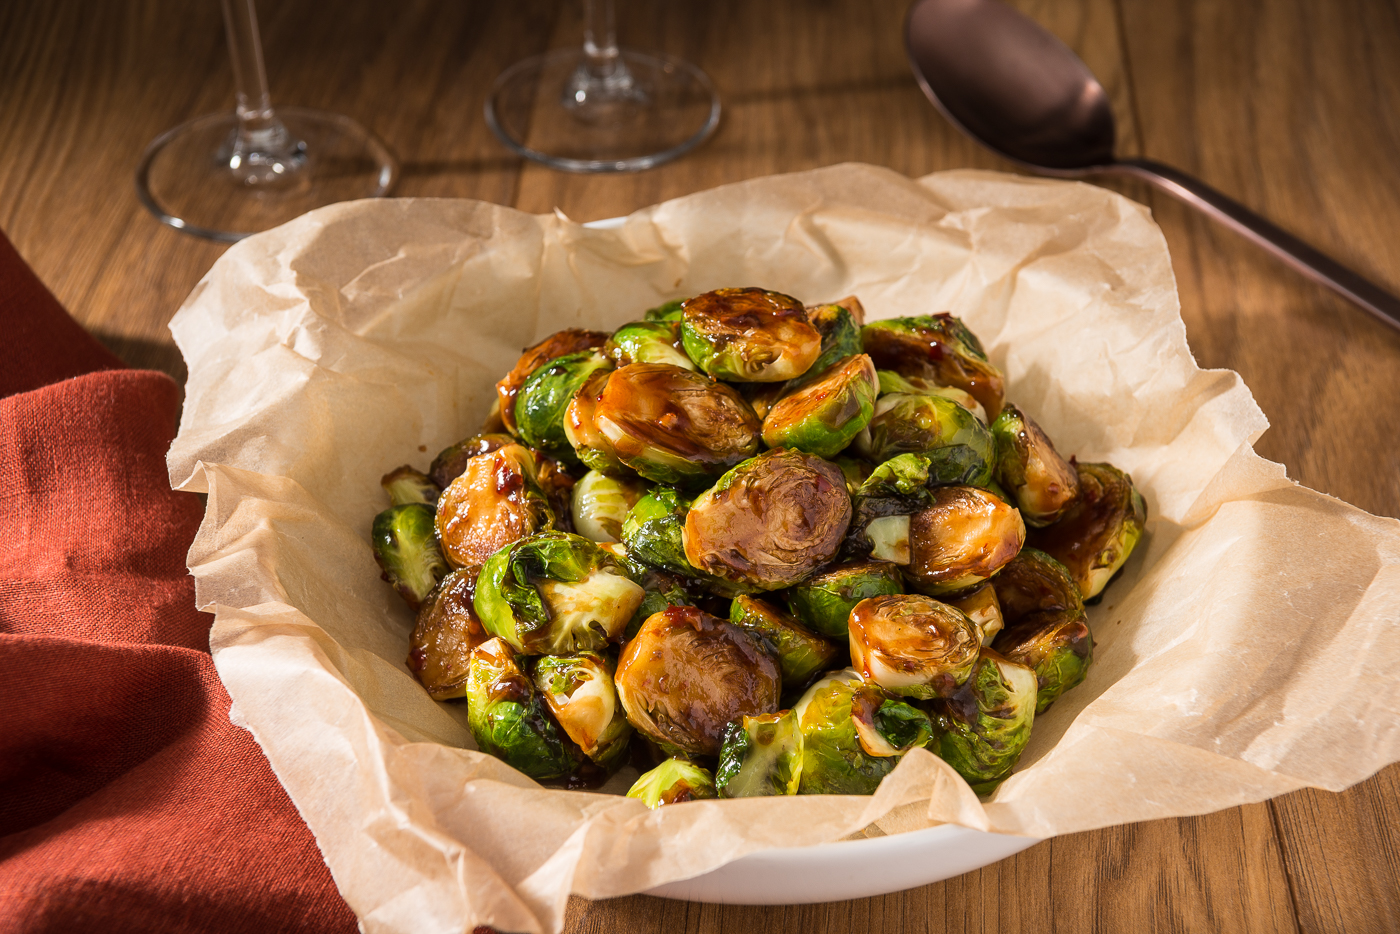 These spicy caramelized Brussels sprouts make an easy and impressive side dish for holiday entertaining.